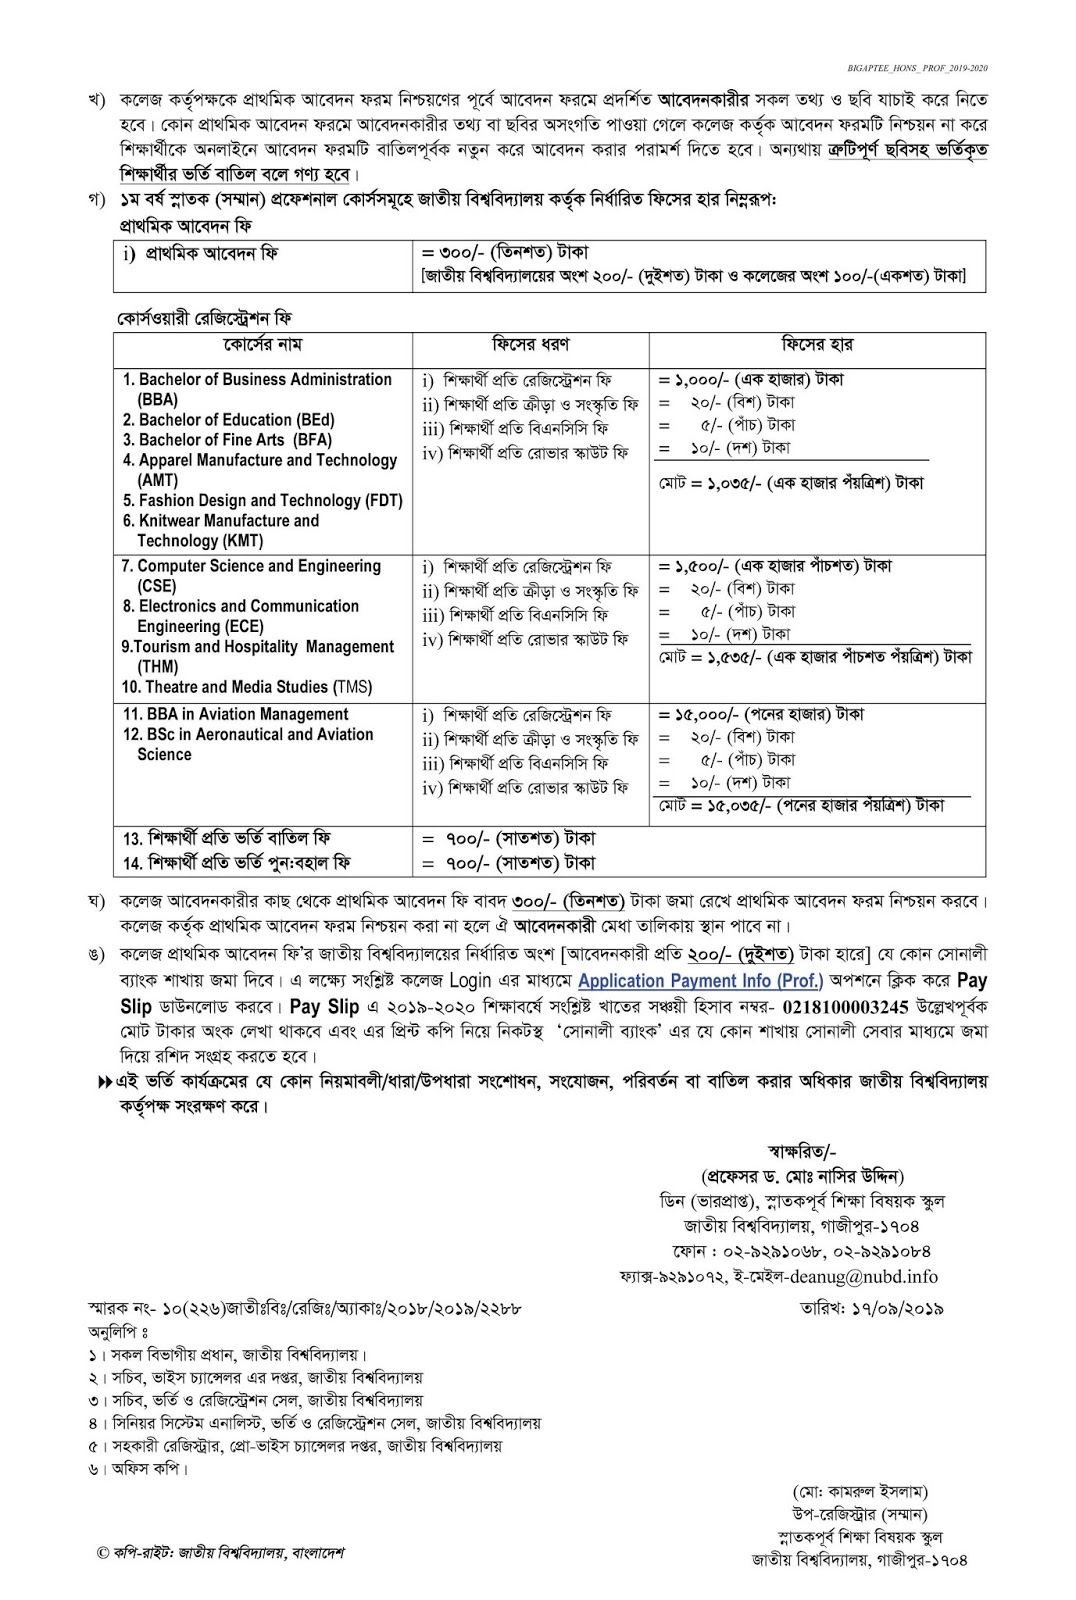 NU AC (honors) professional course 2019-2020 Admission Notice